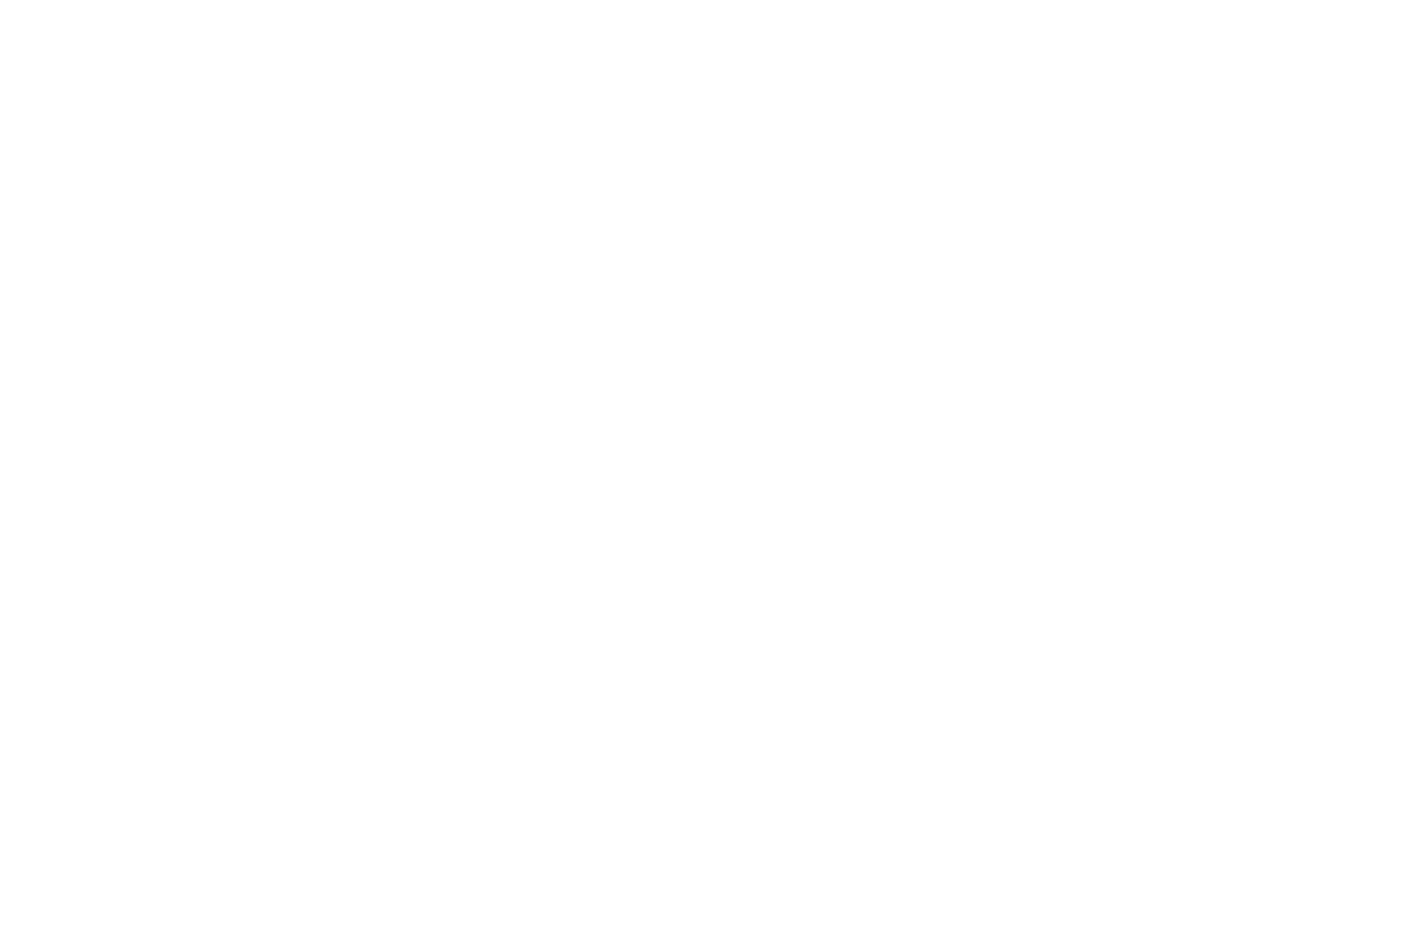 Selwood Scribe Services - copywriting, editing, proofreading